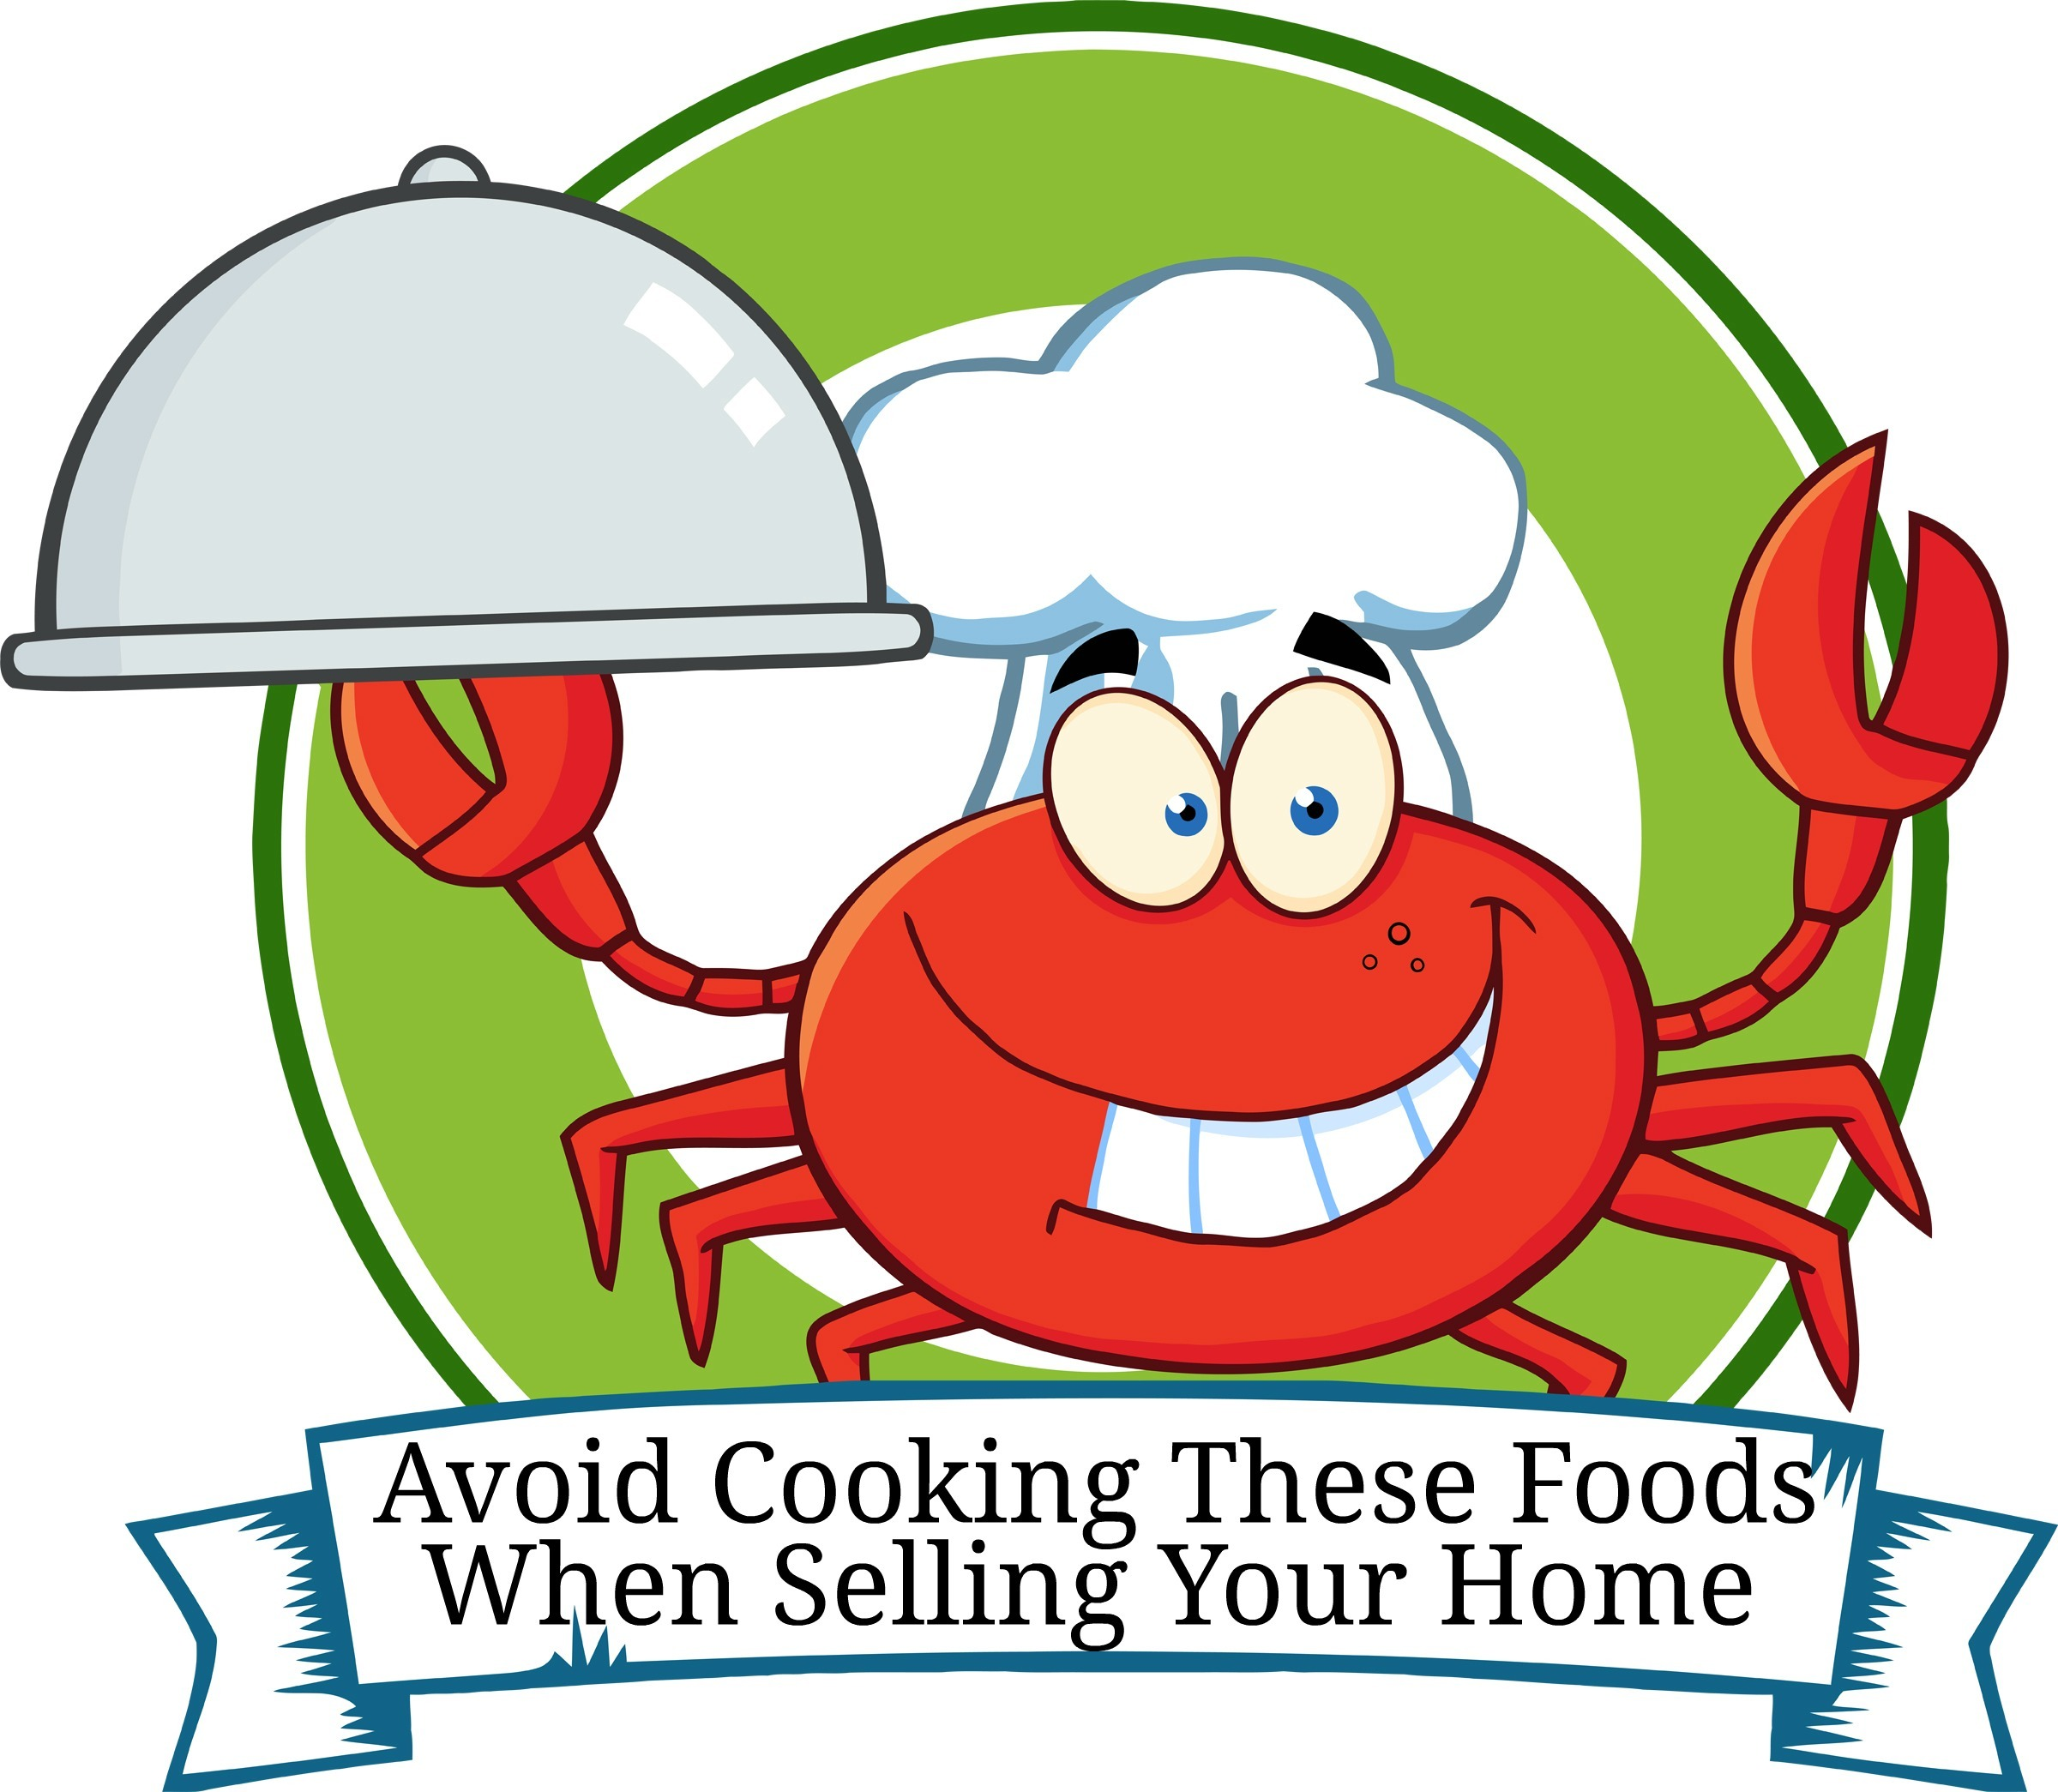 Don't Cook These Foods When Selling Your Home